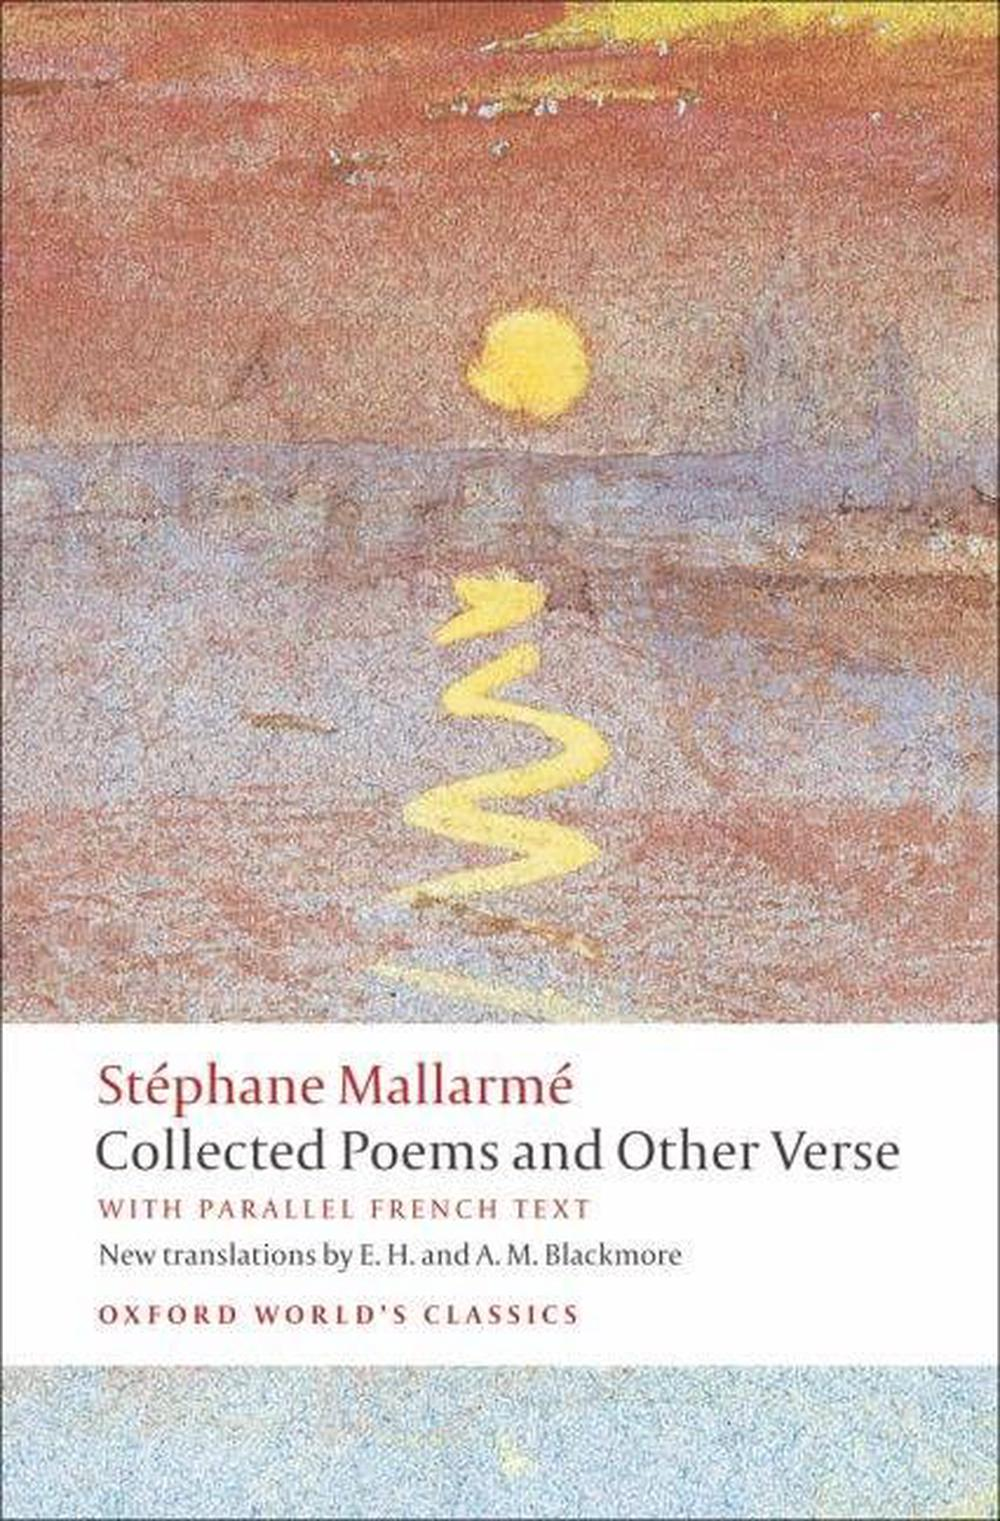 Collected Poems and Other Verse by Stephane Mallarme, ISBN: 9780199537921